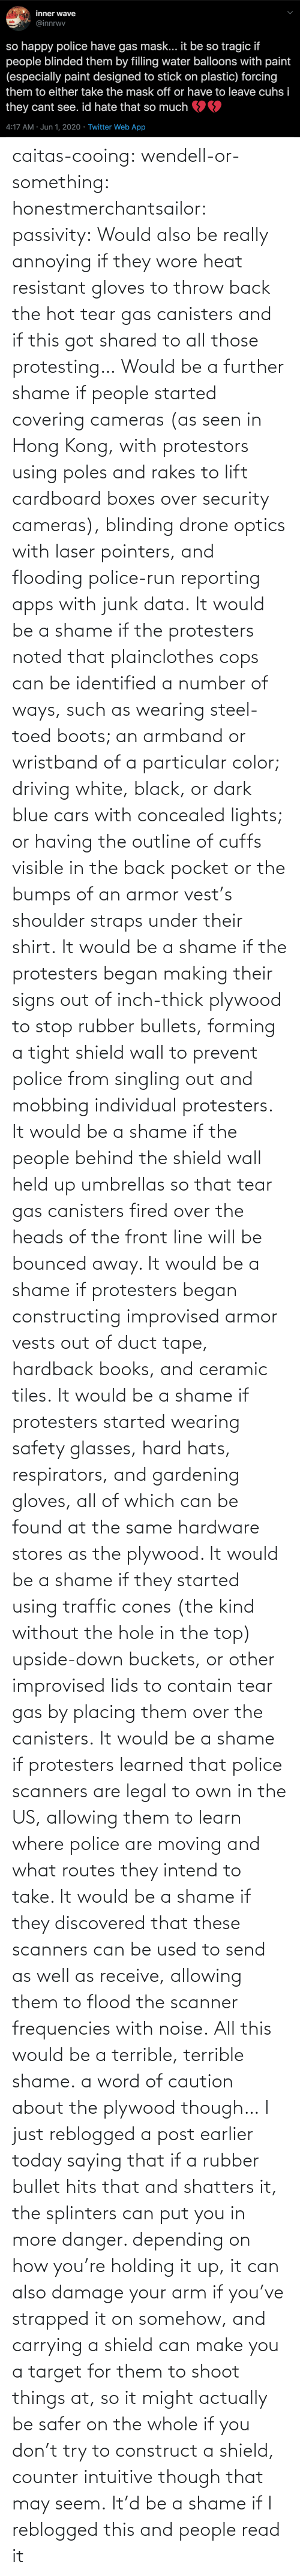 seen: caitas-cooing:  wendell-or-something: honestmerchantsailor:  passivity: Would also be really annoying if they wore heat resistant gloves to throw back the hot tear gas canisters and if this got shared to all those protesting… Would be a further shame if people started covering cameras (as seen in Hong Kong, with protestors using poles and rakes to lift cardboard boxes over security cameras), blinding drone optics with laser pointers, and flooding police-run reporting apps with junk data. It would be a shame if the protesters noted that plainclothes cops can be identified a number of ways, such as wearing steel-toed boots; an armband or wristband of a particular color; driving white, black, or dark blue cars with concealed lights; or having the outline of cuffs visible in the back pocket or the bumps of an armor vest's shoulder straps under their shirt. It would be a shame if the protesters began making their signs out of inch-thick plywood to stop rubber bullets, forming a tight shield wall to prevent police from singling out and mobbing individual protesters. It would be a shame if the people behind the shield wall held up umbrellas so that tear gas canisters fired over the heads of the front line will be bounced away. It would be a shame if protesters began constructing improvised armor vests out of duct tape, hardback books, and ceramic tiles. It would be a shame if protesters started wearing safety glasses, hard hats, respirators, and gardening gloves, all of which can be found at the same hardware stores as the plywood. It would be a shame if they started using traffic cones (the kind without the hole in the top) upside-down buckets, or other improvised lids to contain tear gas by placing them over the canisters. It would be a shame if protesters learned that police scanners are legal to own in the US, allowing them to learn where police are moving and what routes they intend to take. It would be a shame if they discovered that these scanners can be used to send as well as receive, allowing them to flood the scanner frequencies with noise. All this would be a terrible, terrible shame.    a word of caution about the plywood though… I just reblogged a post earlier today saying that if a rubber bullet hits that and shatters it, the splinters can put you in more danger. depending on how you're holding it up, it can also damage your arm if you've strapped it on somehow, and carrying a shield can make you a target for them to shoot things at, so it might actually be safer on the whole if you don't try to construct a shield, counter intuitive though that may seem.    It'd be a shame if I reblogged this and people read it